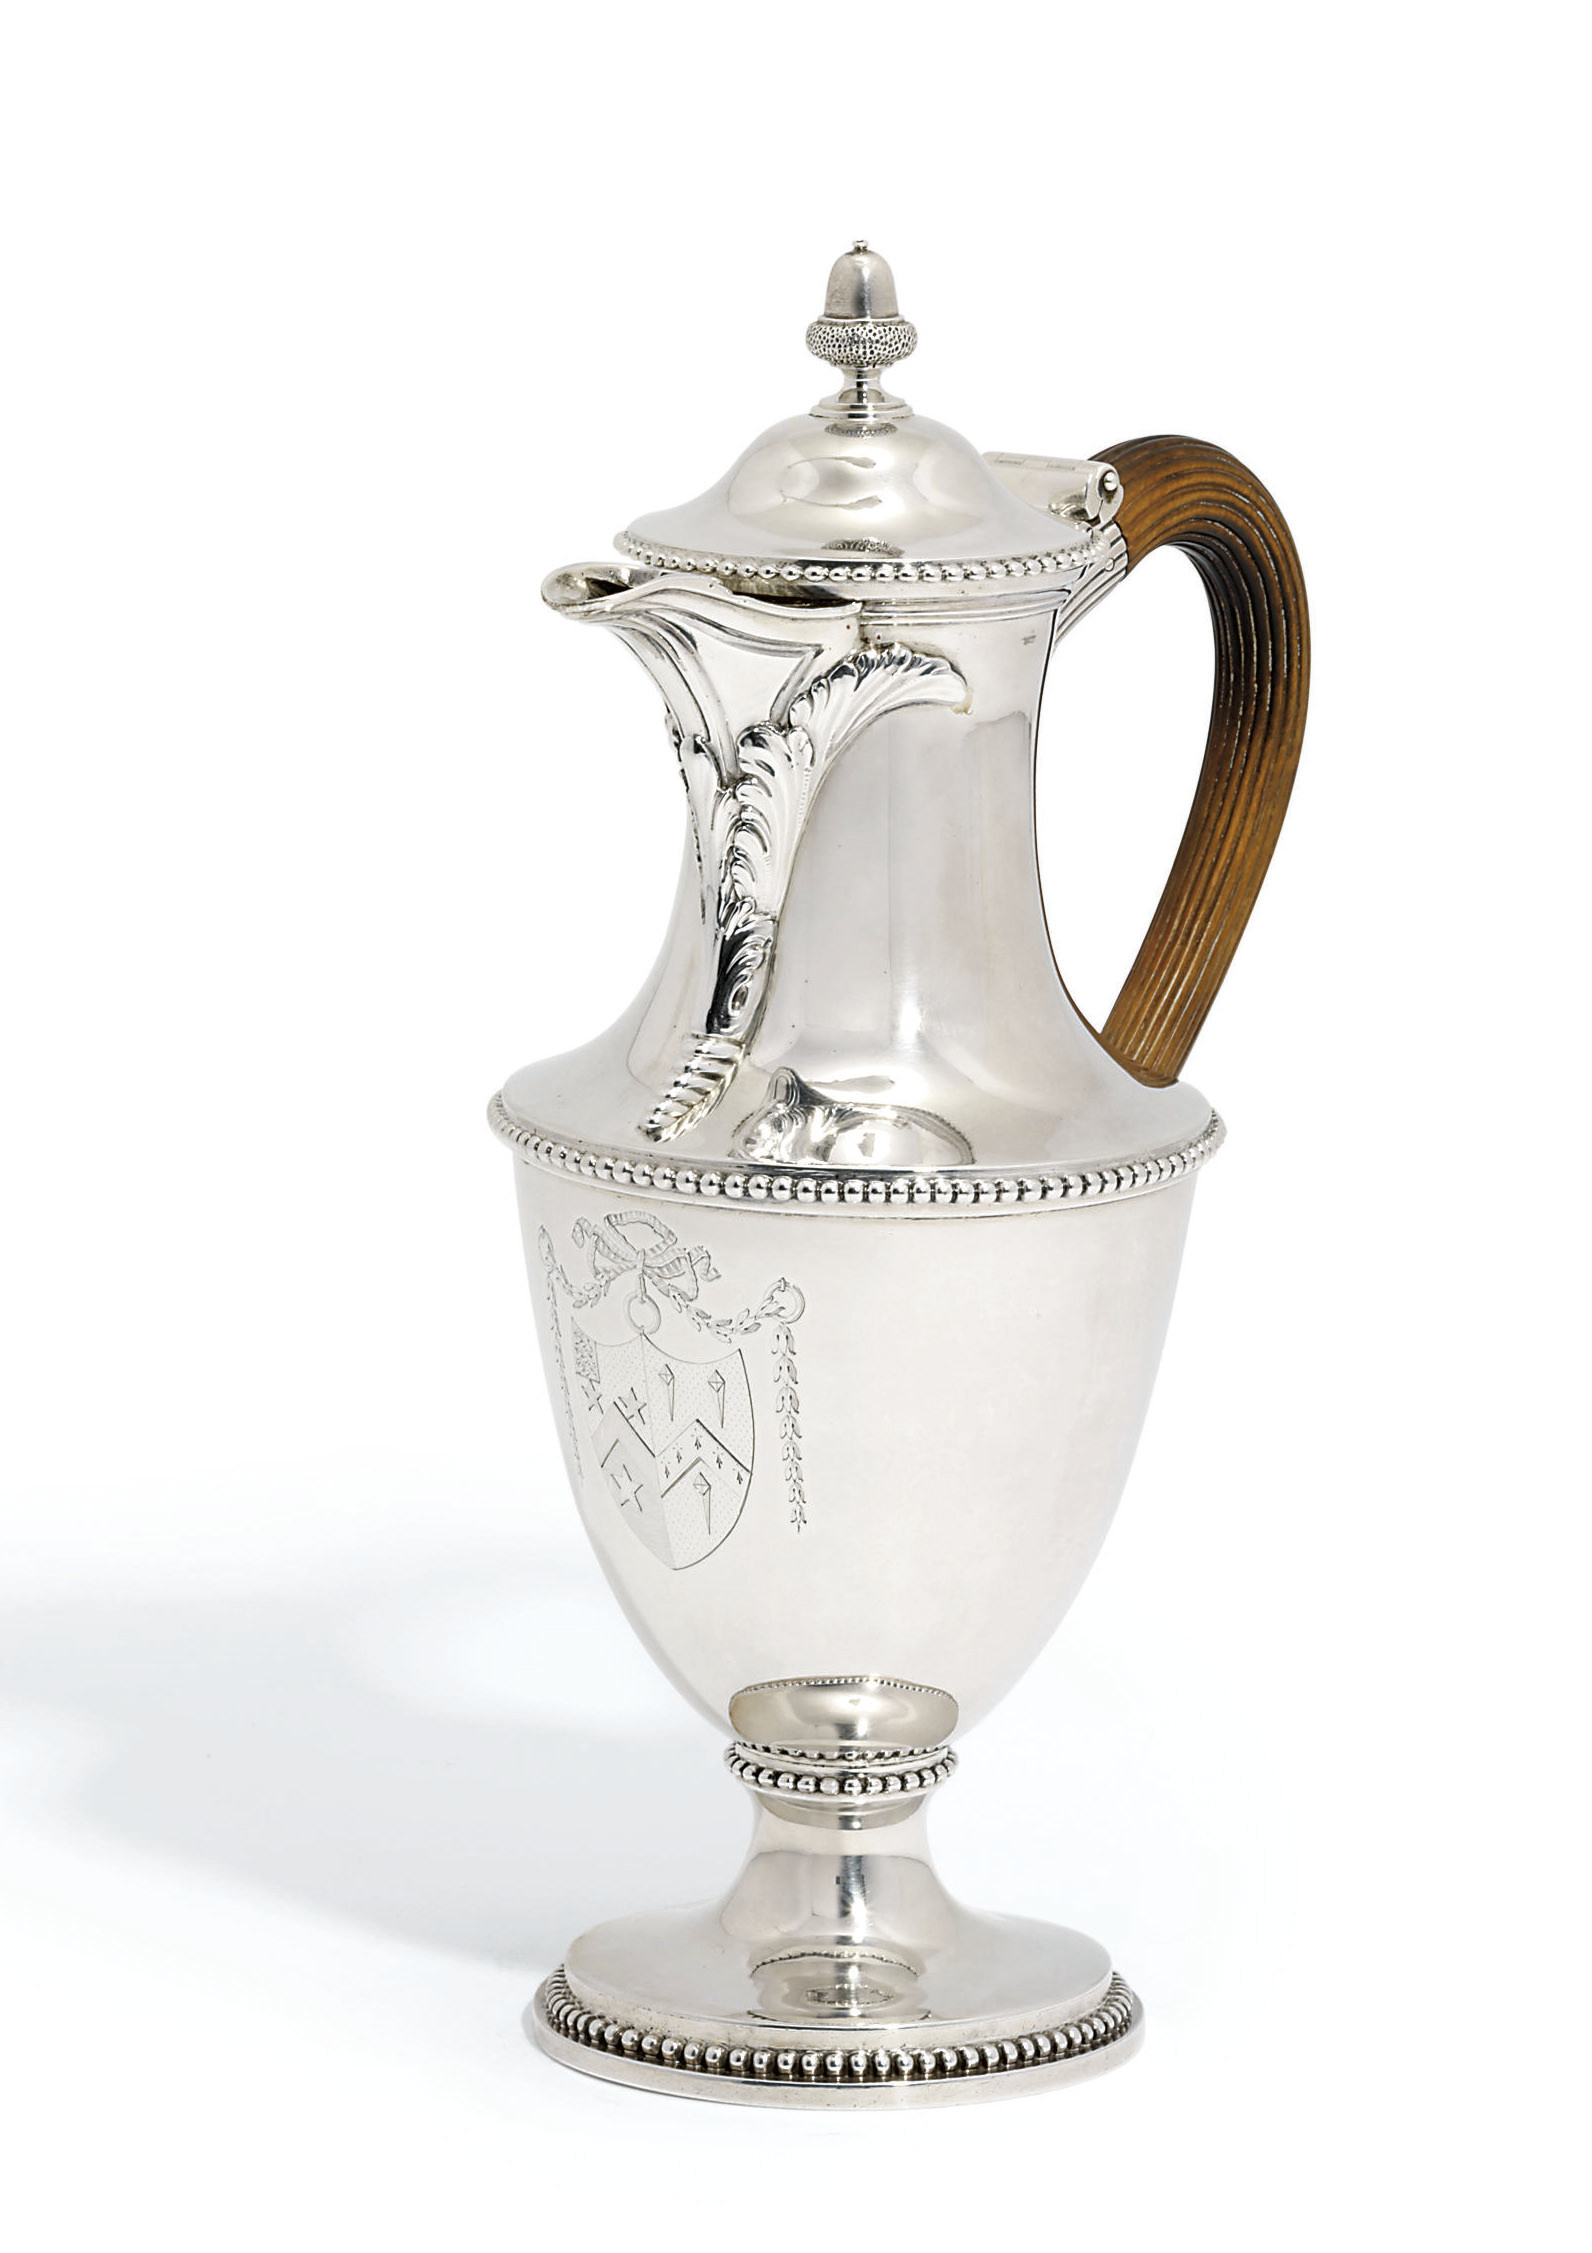 A GEORGE III SILVER HOT-WATER JUG